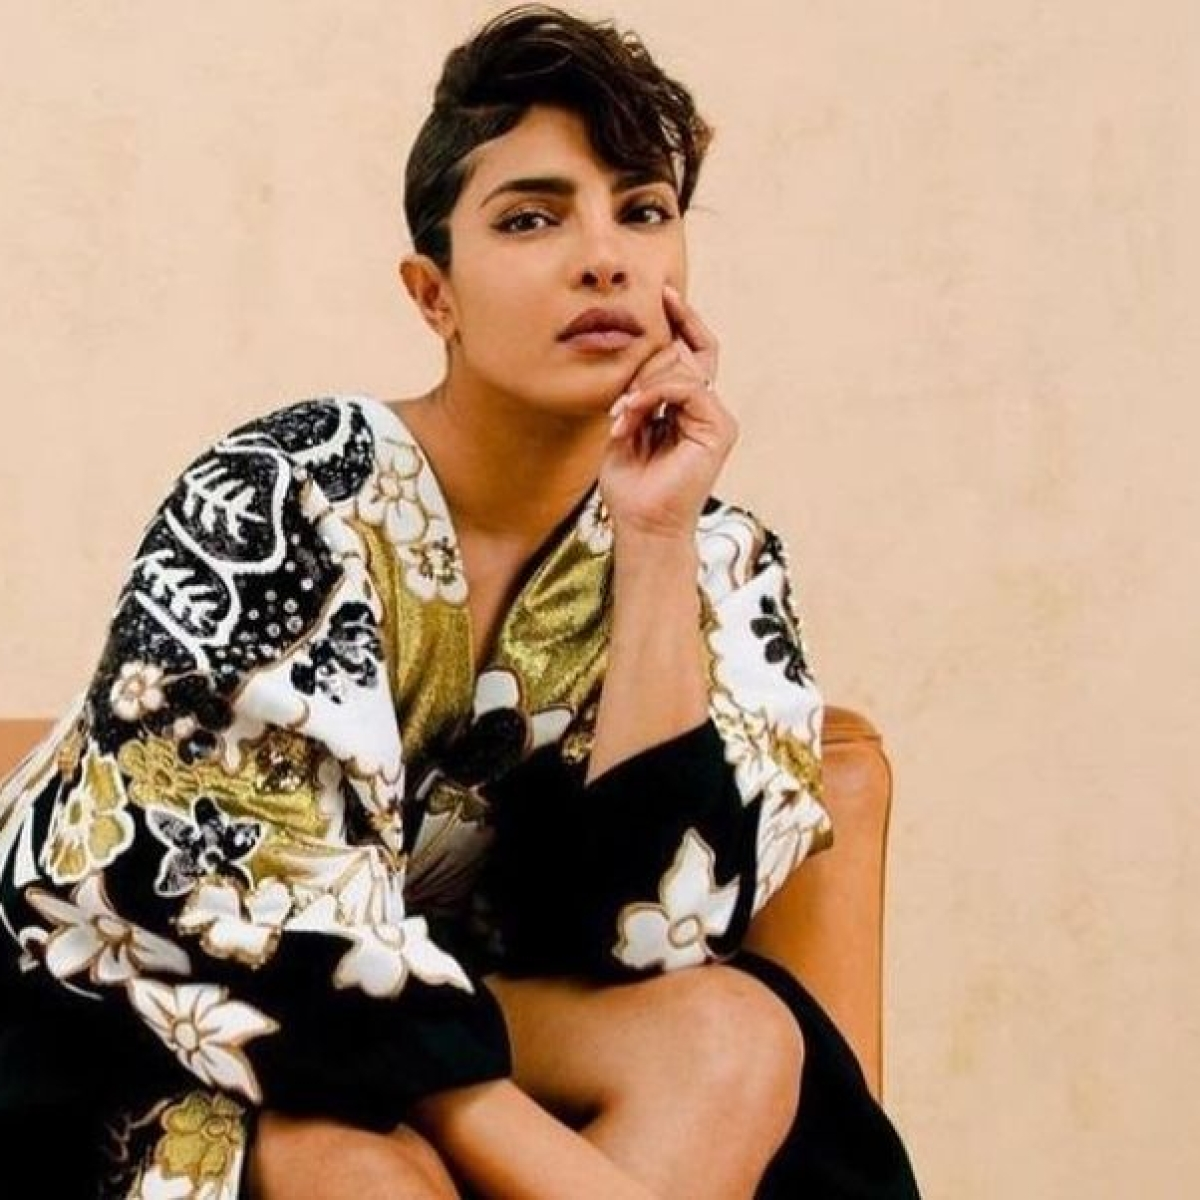 'I took it very personally': Priyanka Chopra opens up on racist bullying she experienced in the US